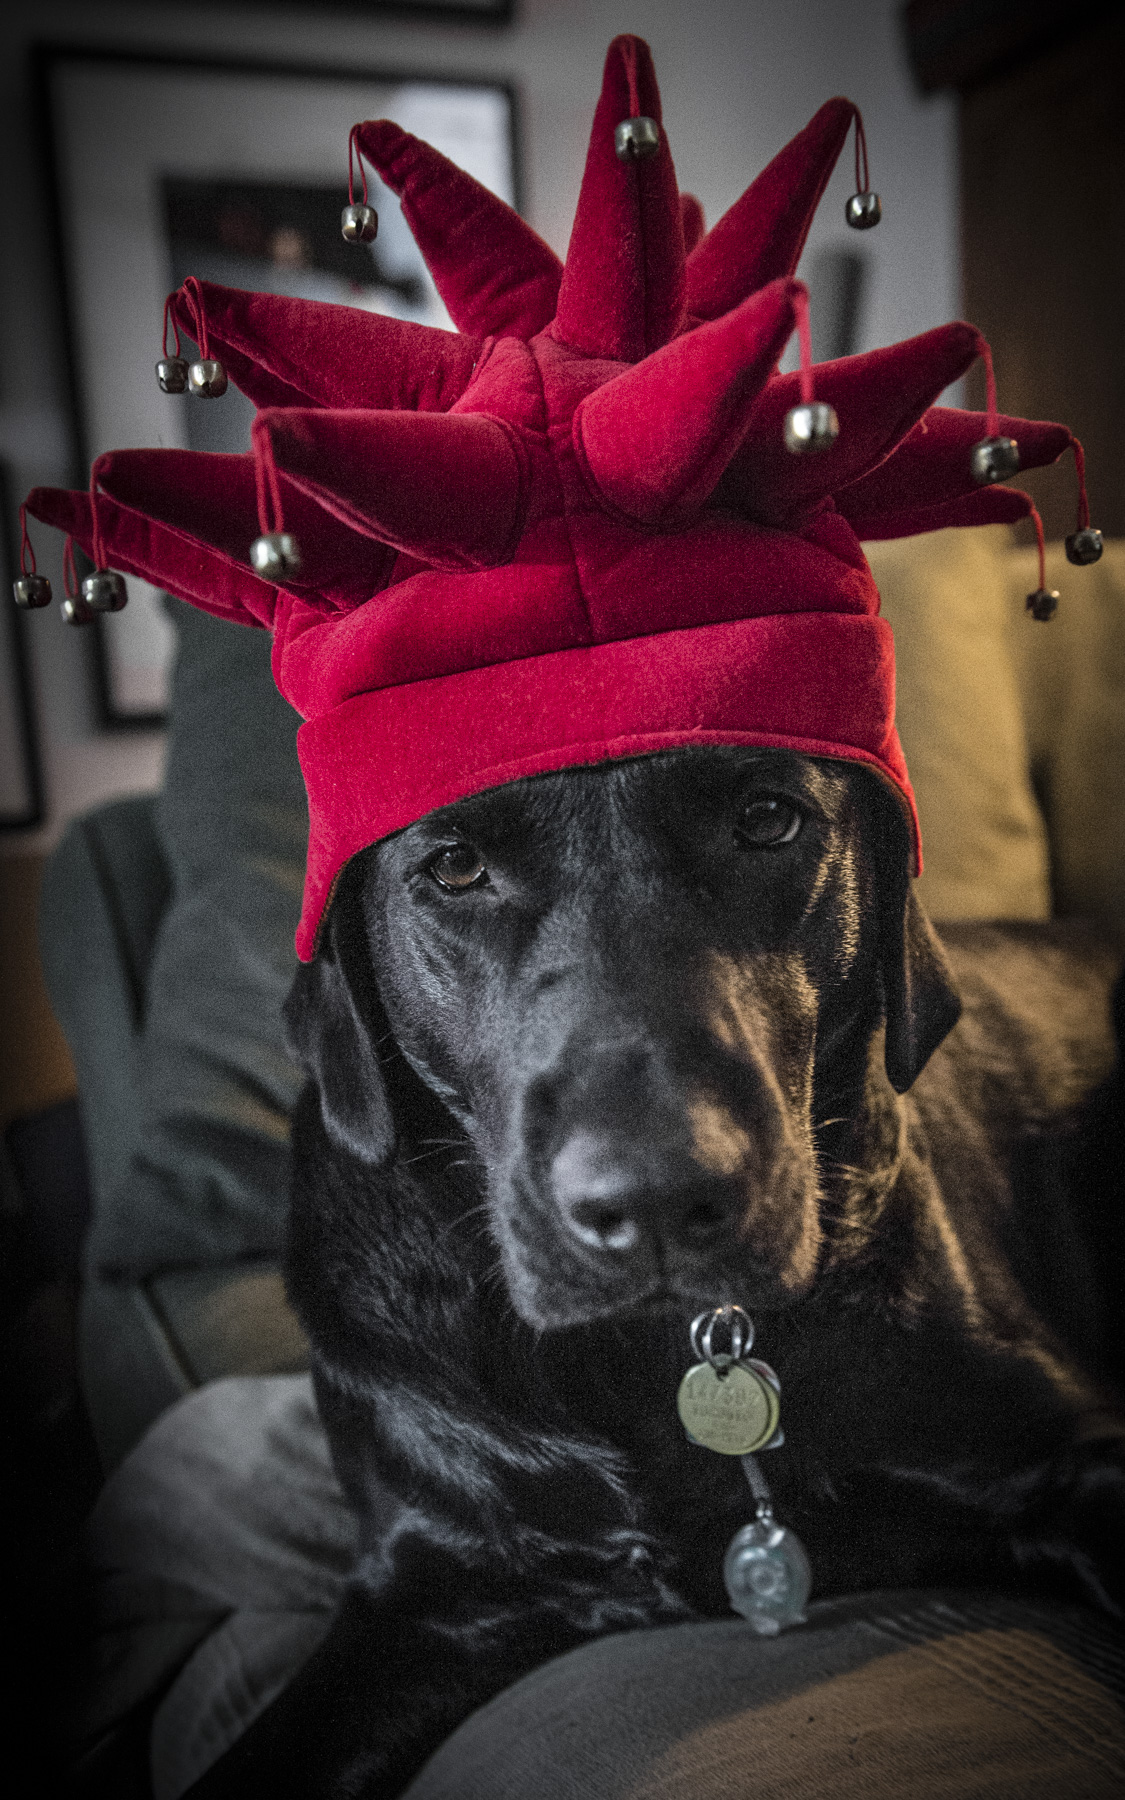 Merry Christmas from Bob the Dog and his faithful servant!